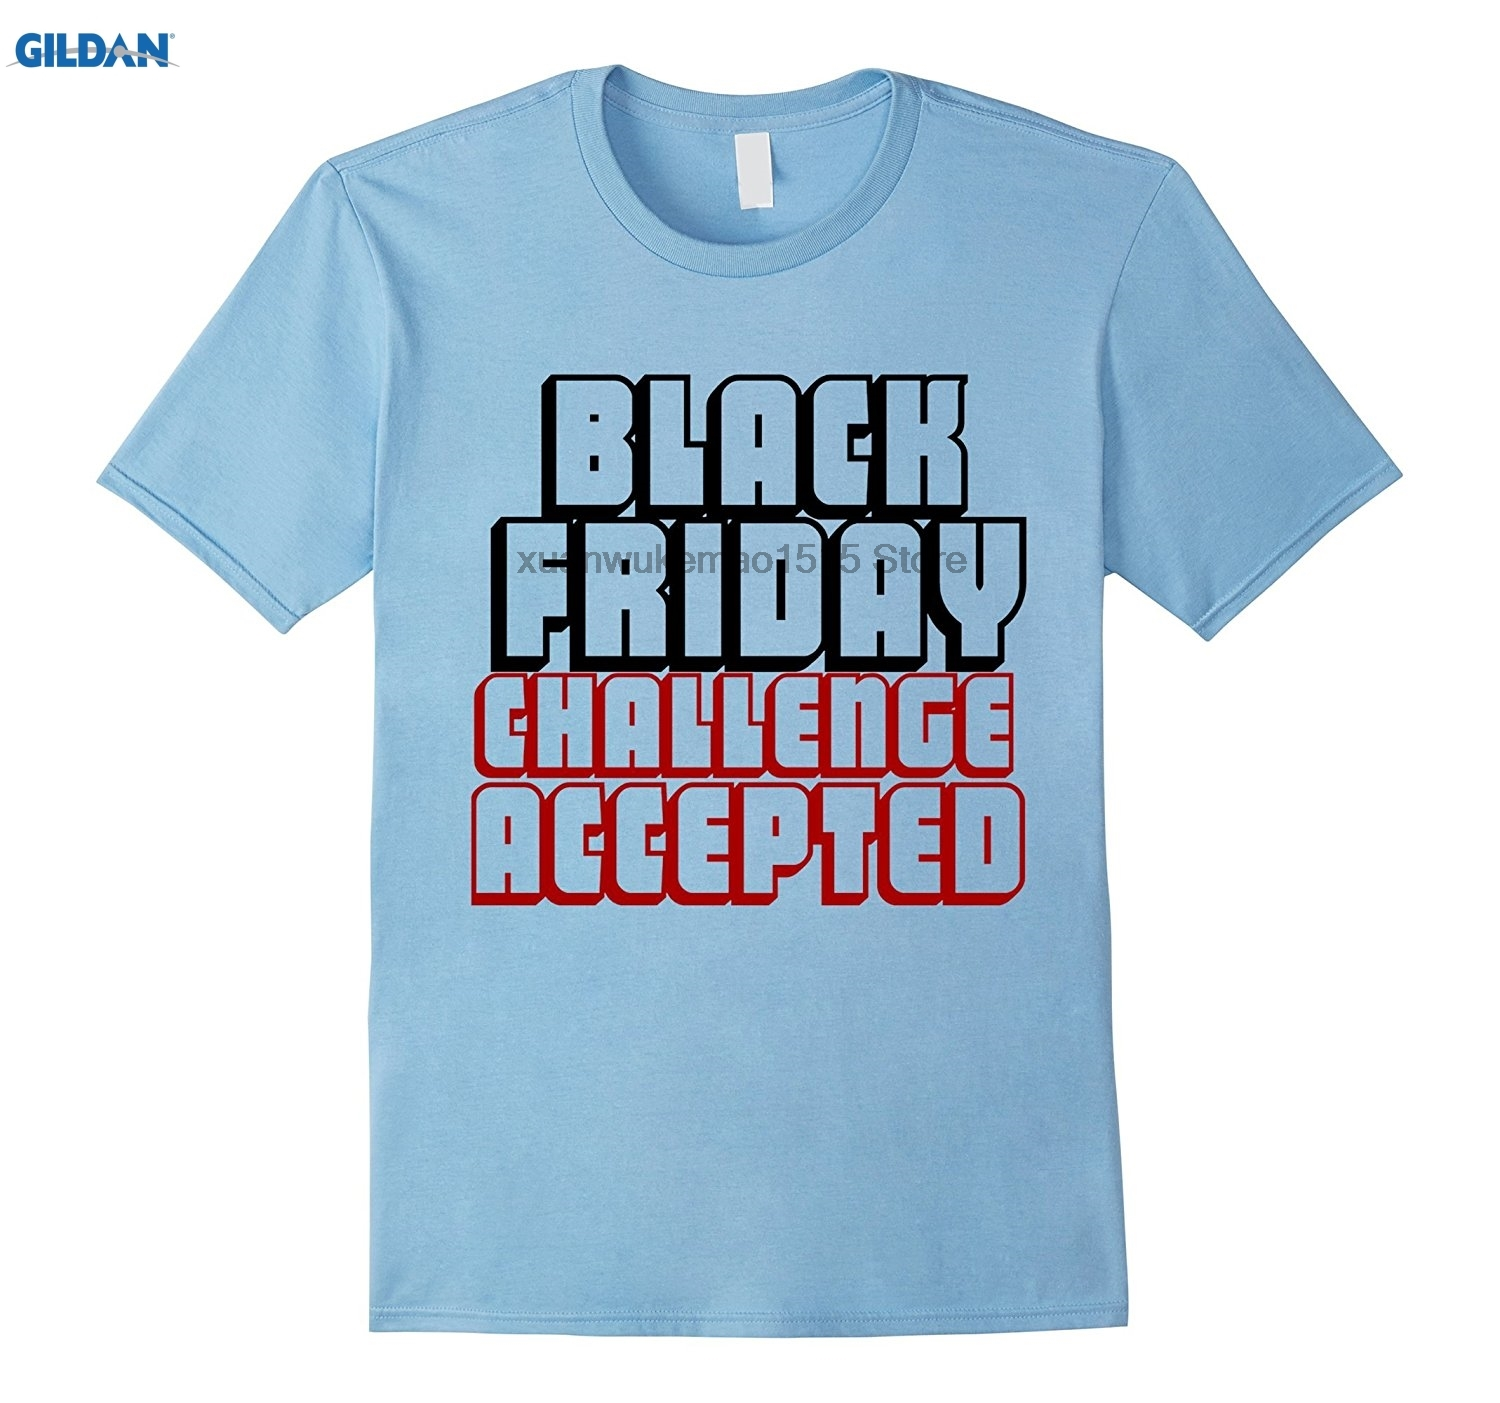 GILDAN Black Friday Challenge Accepted T-Shirt